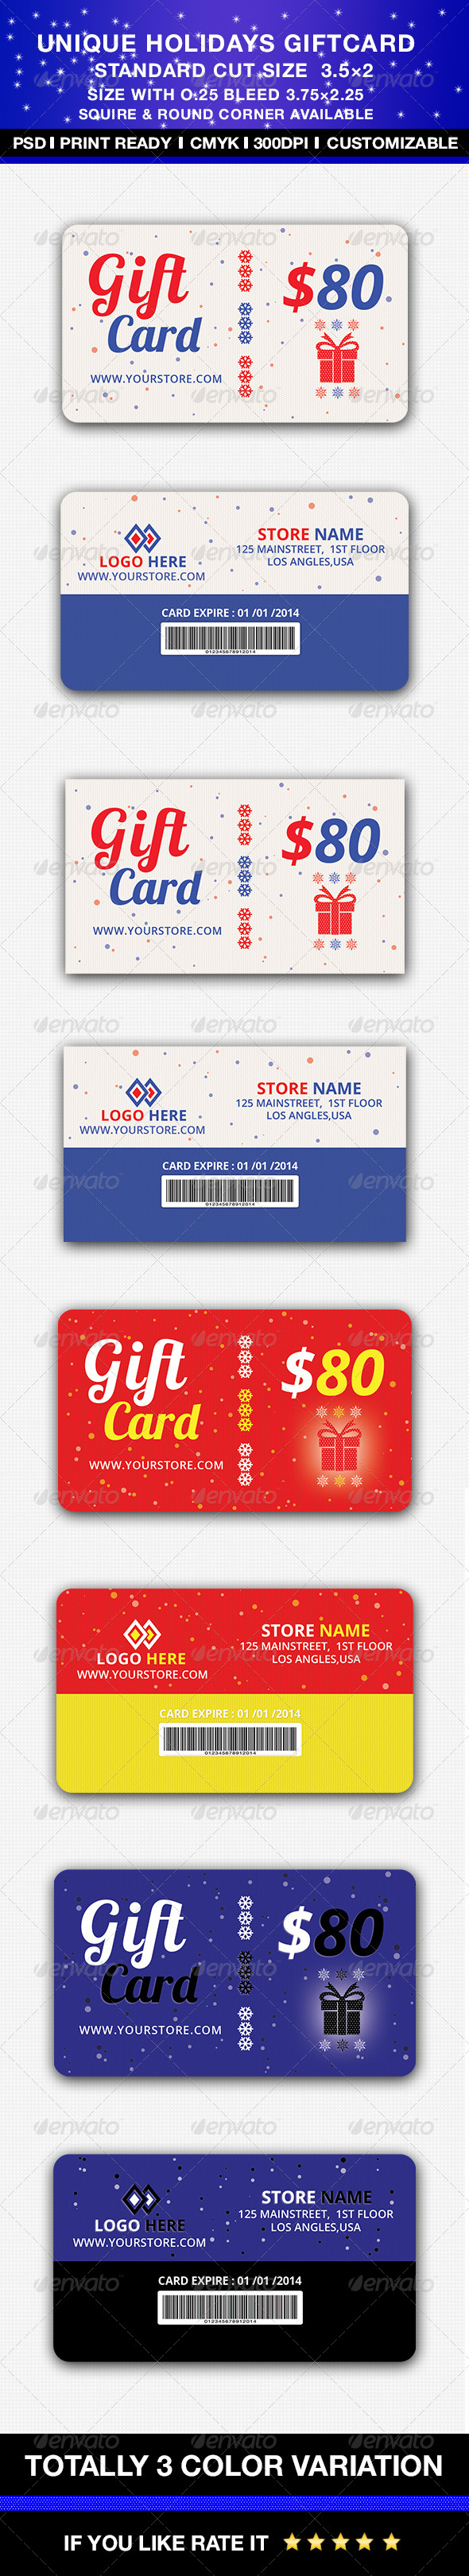 Unique Holidays Gift card - Holiday Greeting Cards